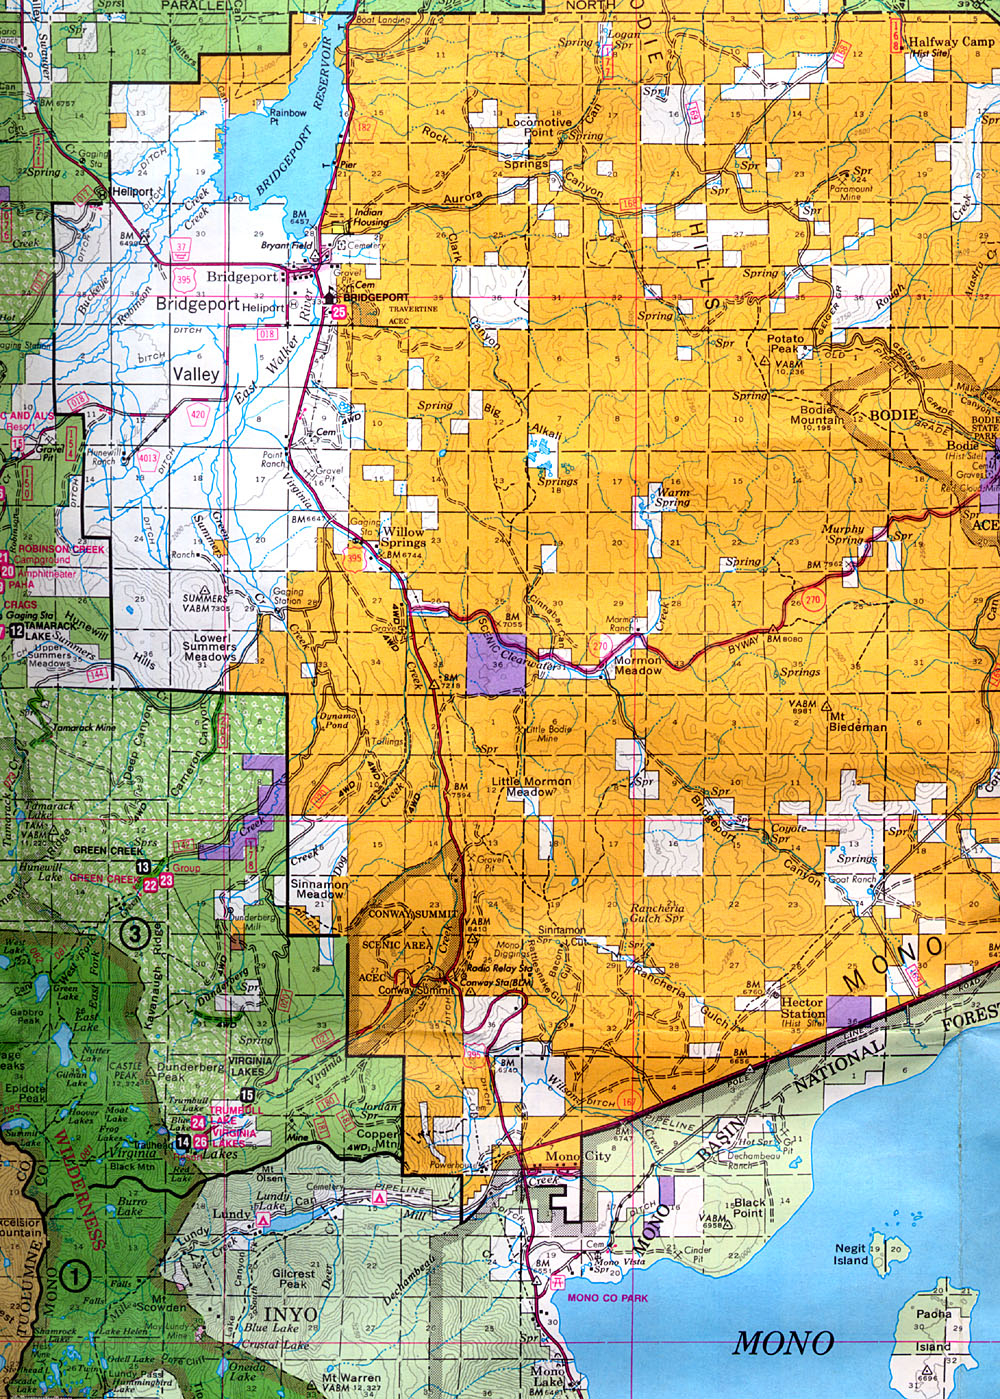 Buy And Find California Maps: Bureau Of Land Management: Northern - California B Zone Deer Hunting Map